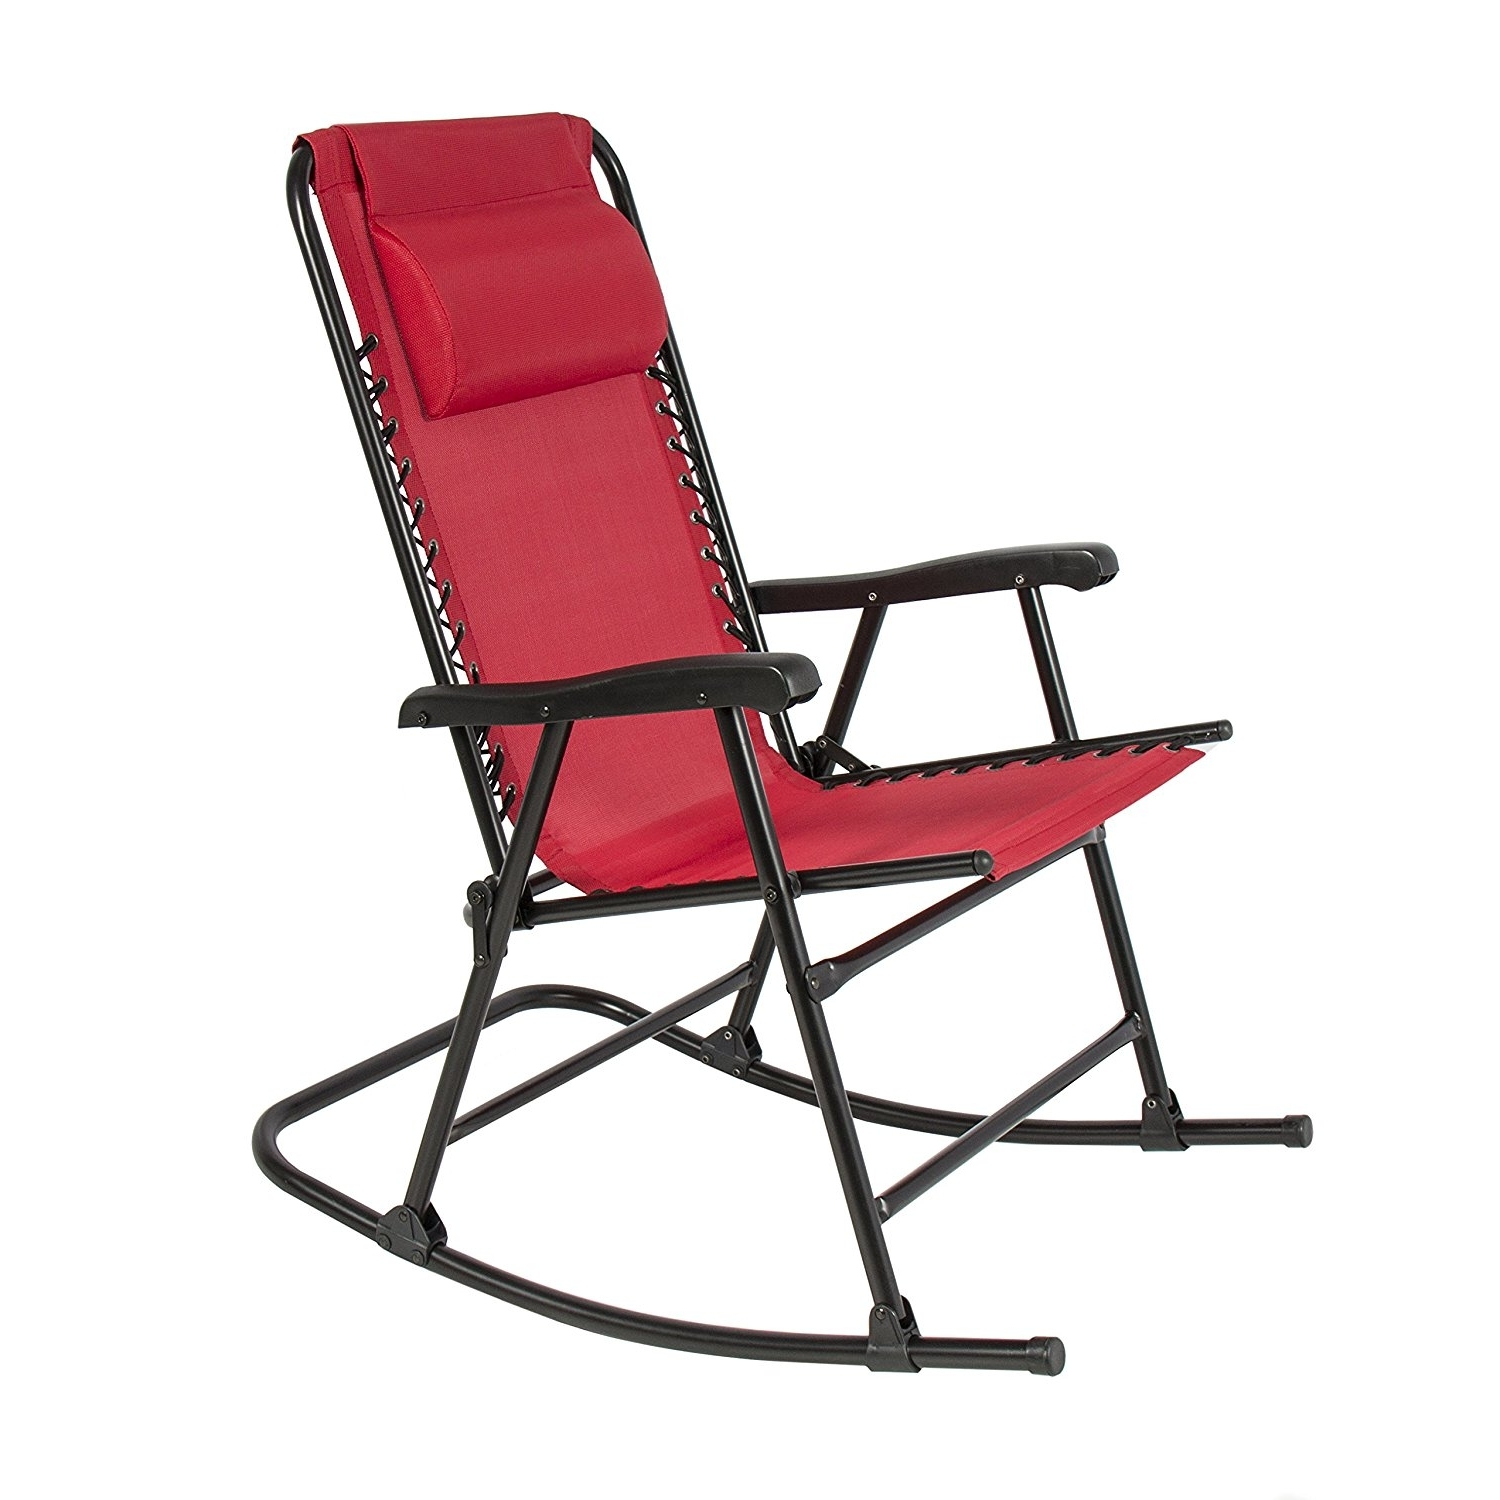 Red Patio Rocking Chairs For Most Current Red Folding Patio Chairs – Decco.voiceoverservices (View 10 of 15)